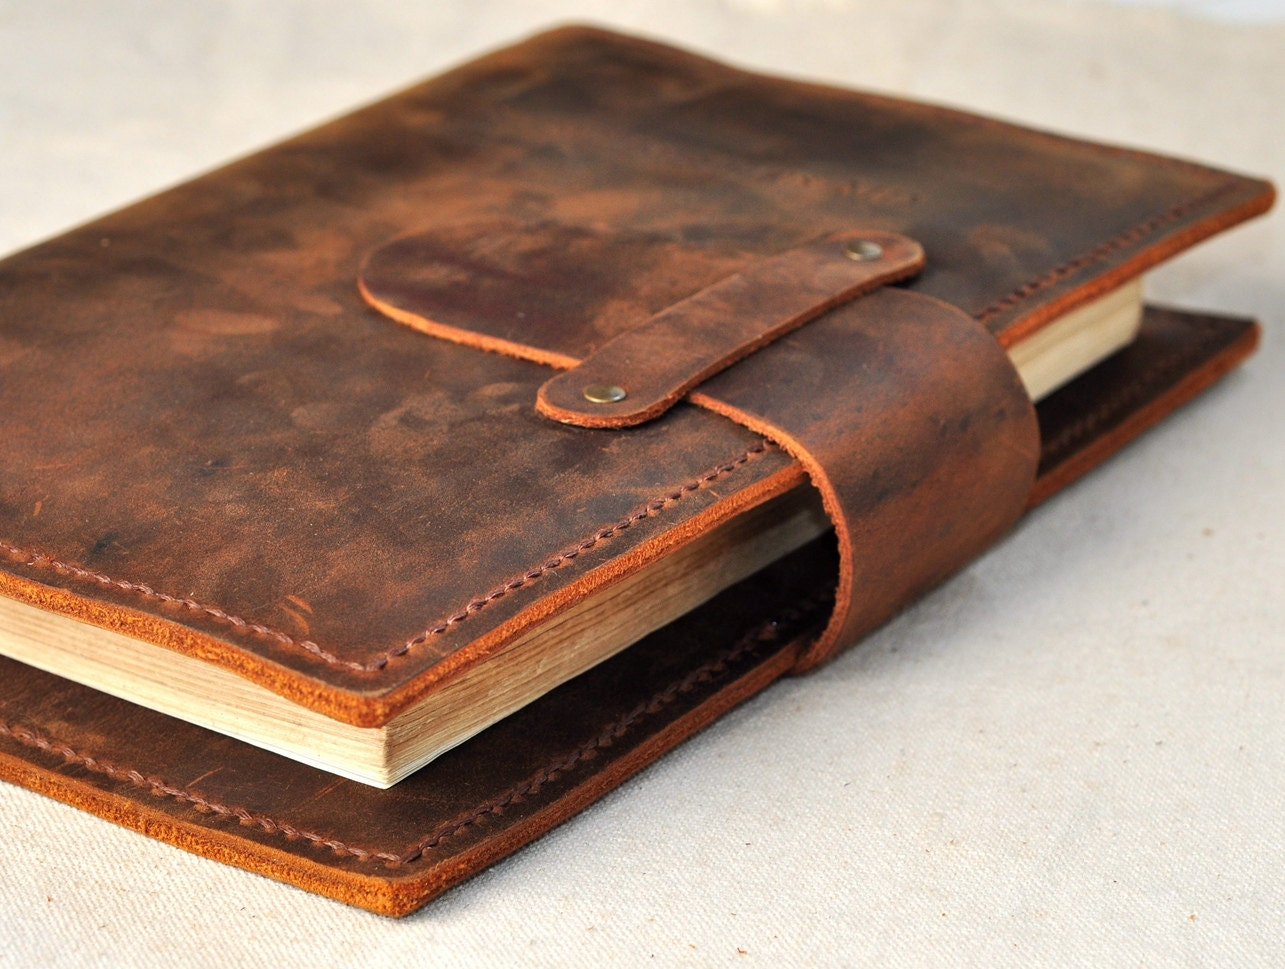 How To Make A Book Cover Leather ~ Handmade leather book coverunique office supplies